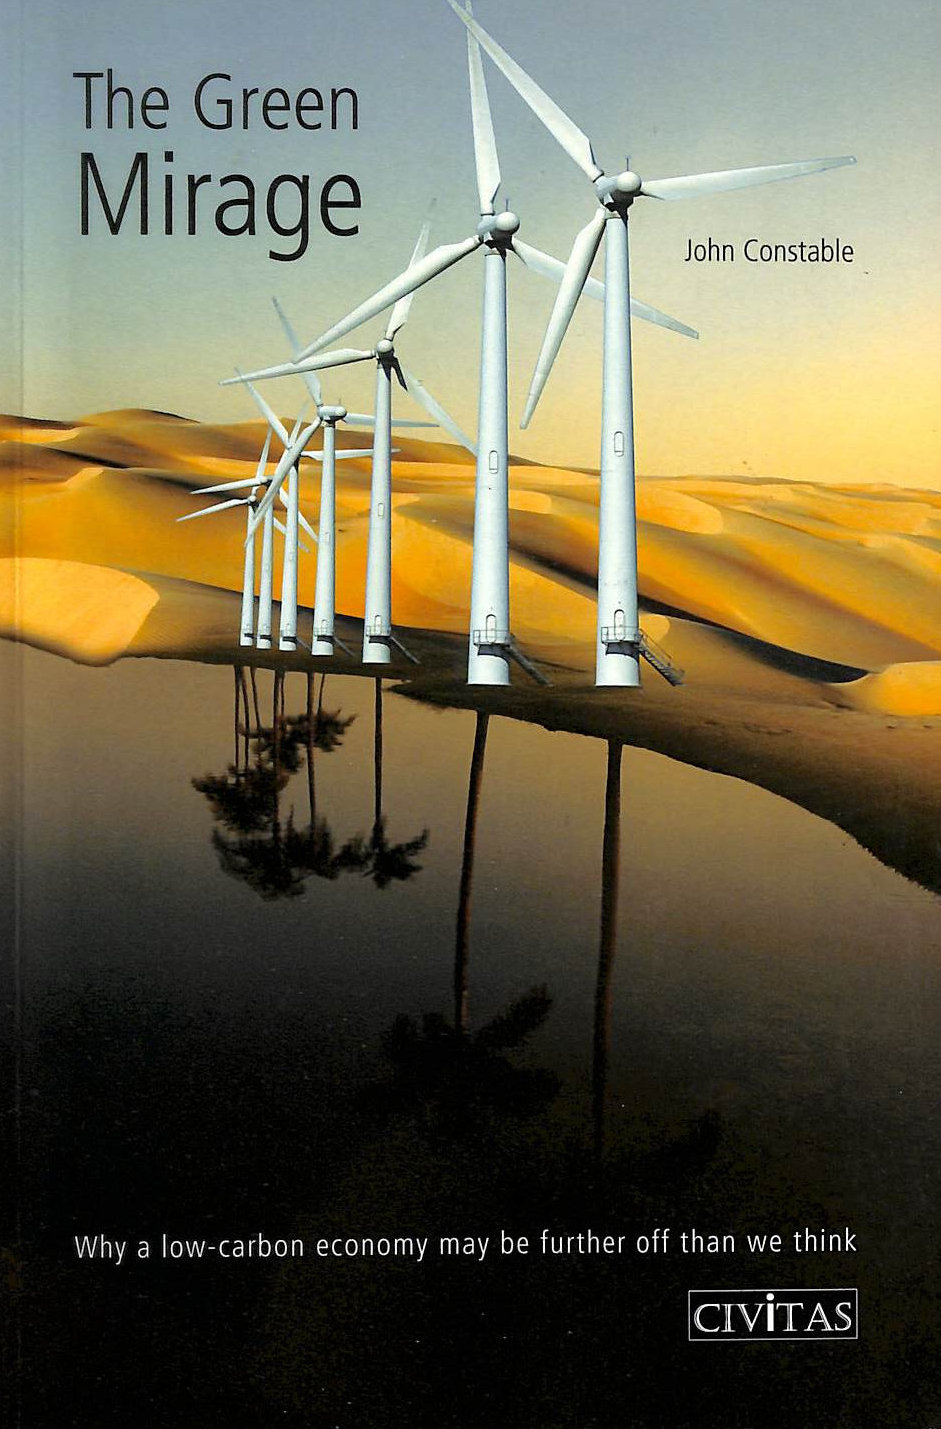 Image for The Green Mirage: Why A Low-Carbon Economy May Be Further Off Than We Think